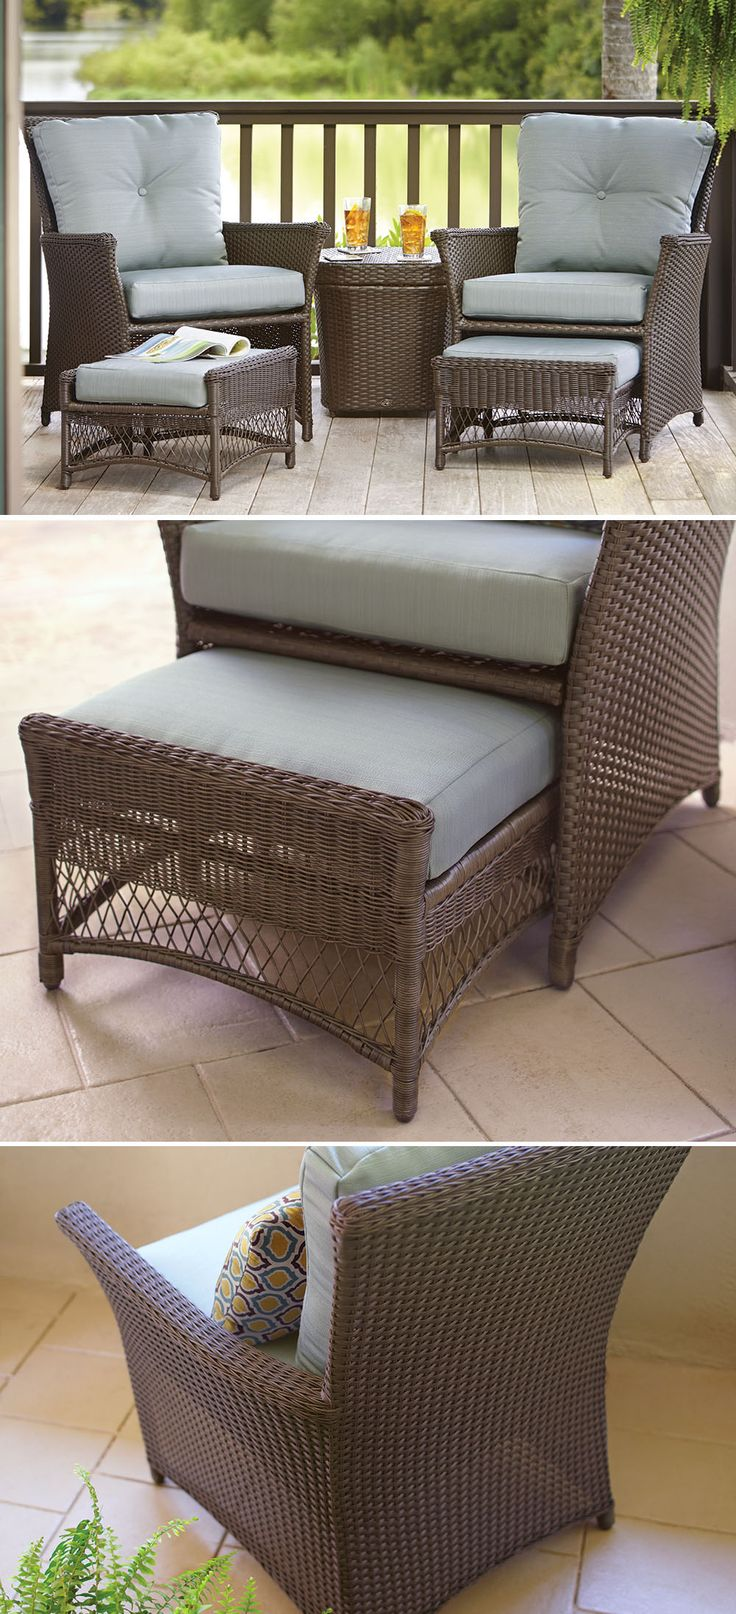 Best Patio Sets Ideas On Pinterest Yard Furniture Diy - Discount patio furniture atlanta